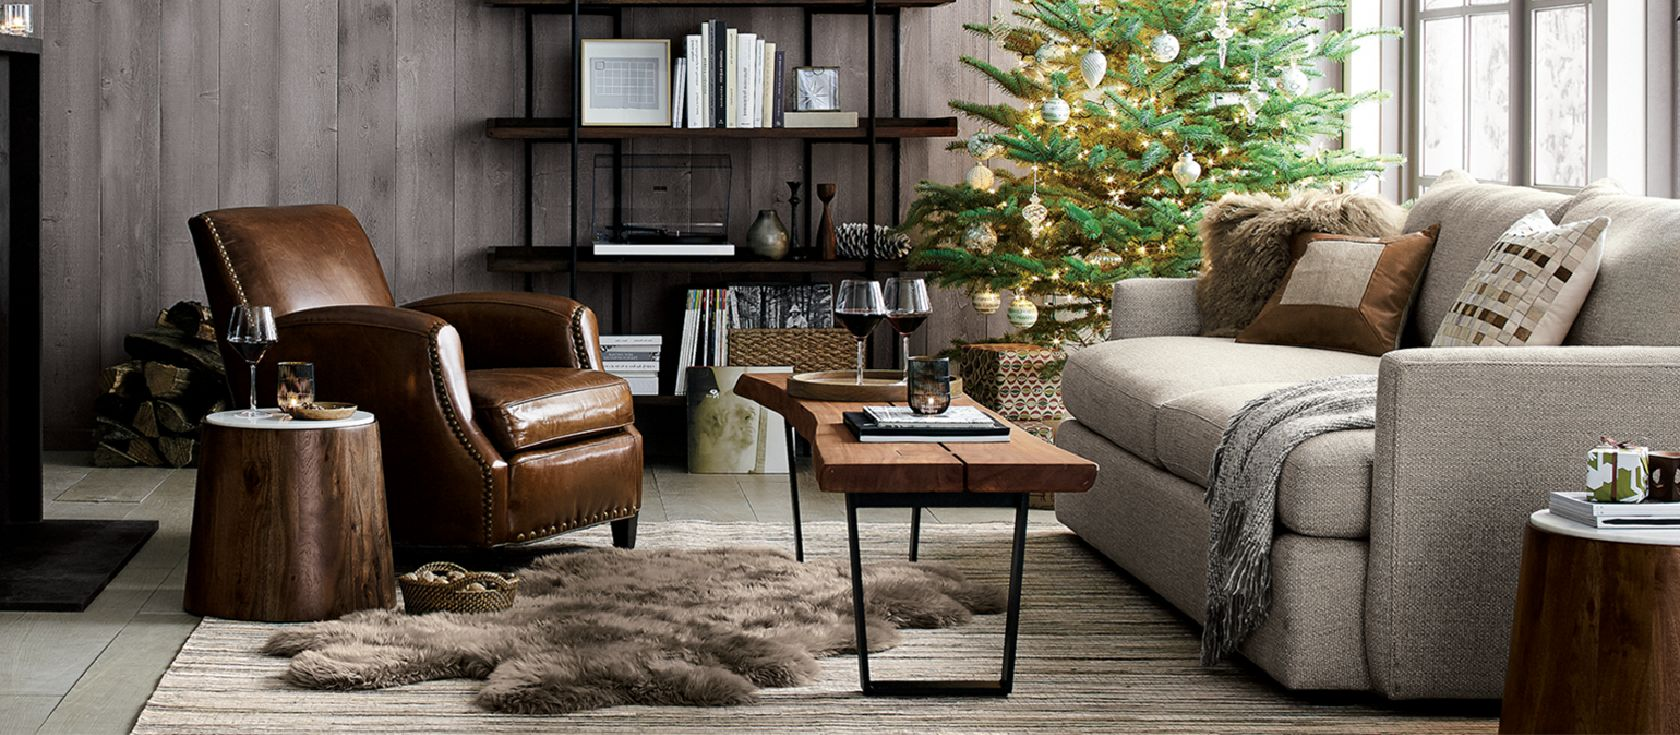 christmas decorations for home and tree crate and barrel. Black Bedroom Furniture Sets. Home Design Ideas